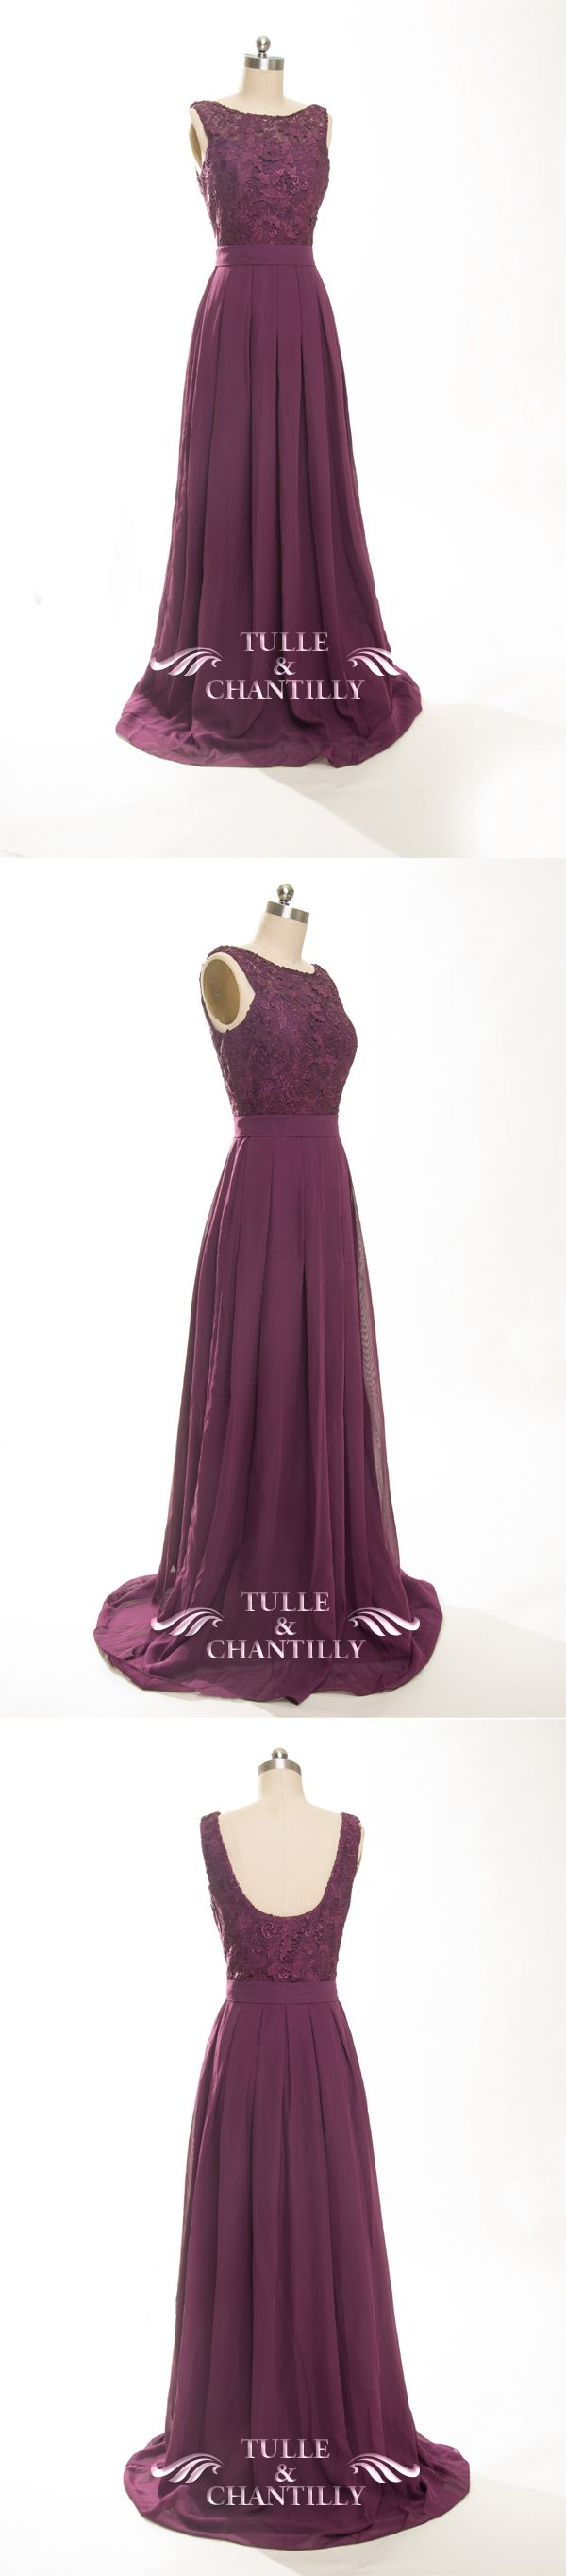 aubergine lace and chiffon bridesmaid dresses for fall wedding ideas